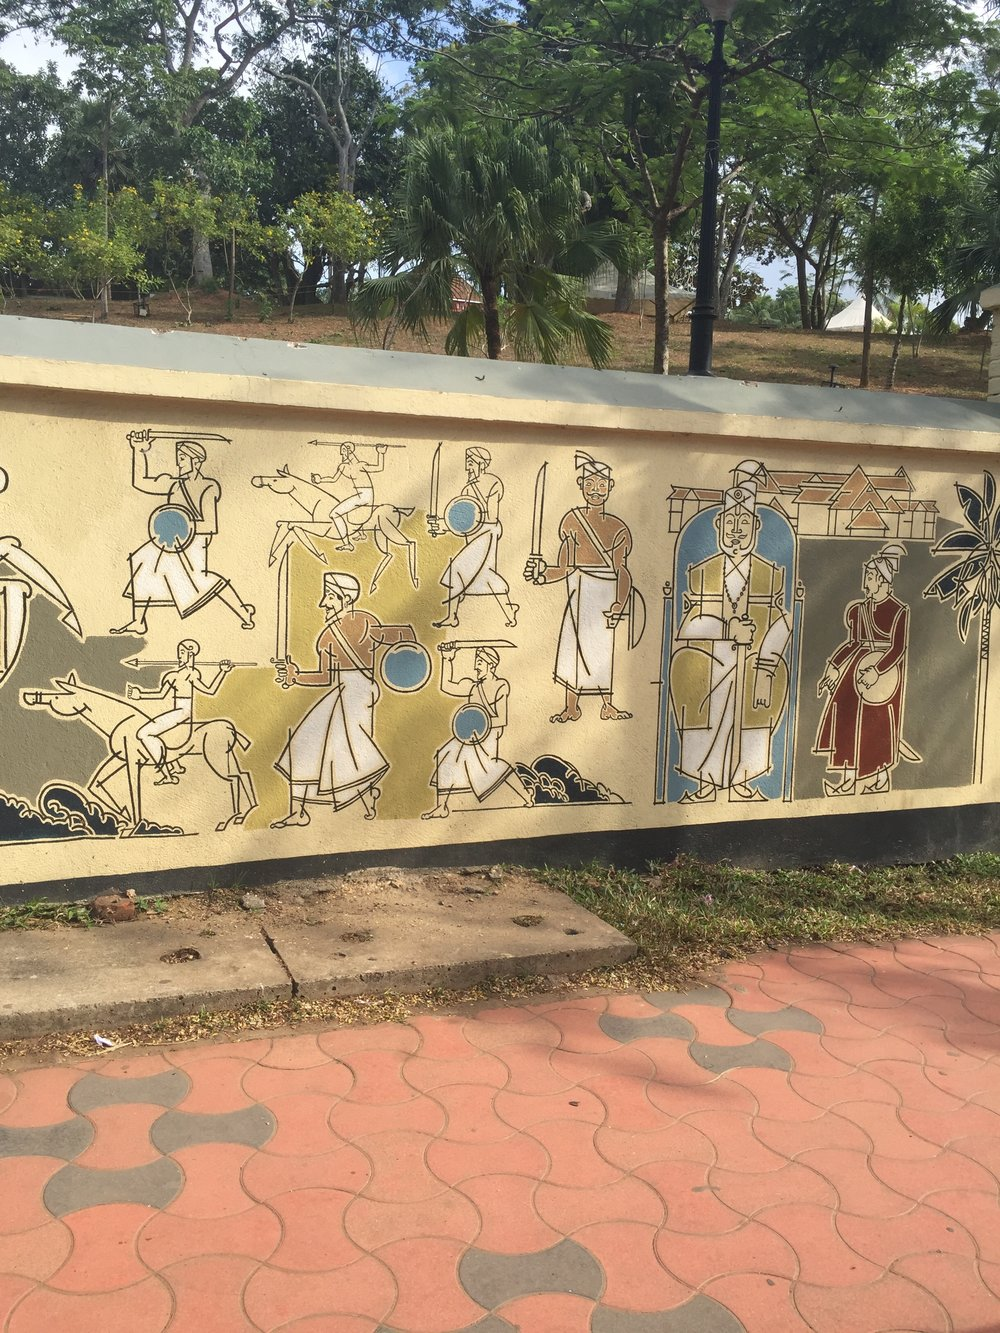 Fig 5. Latter-half of Tipu Sultan Mural Showing Karthika Thirunal Dharma Raja, late-18th century